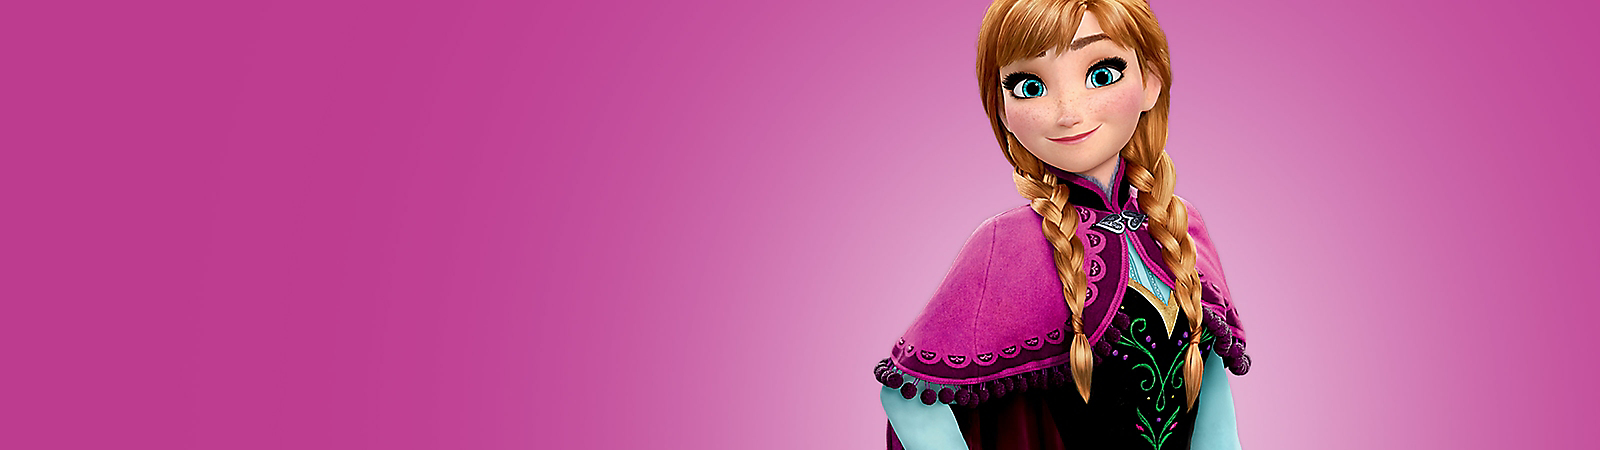 Background image of Anna